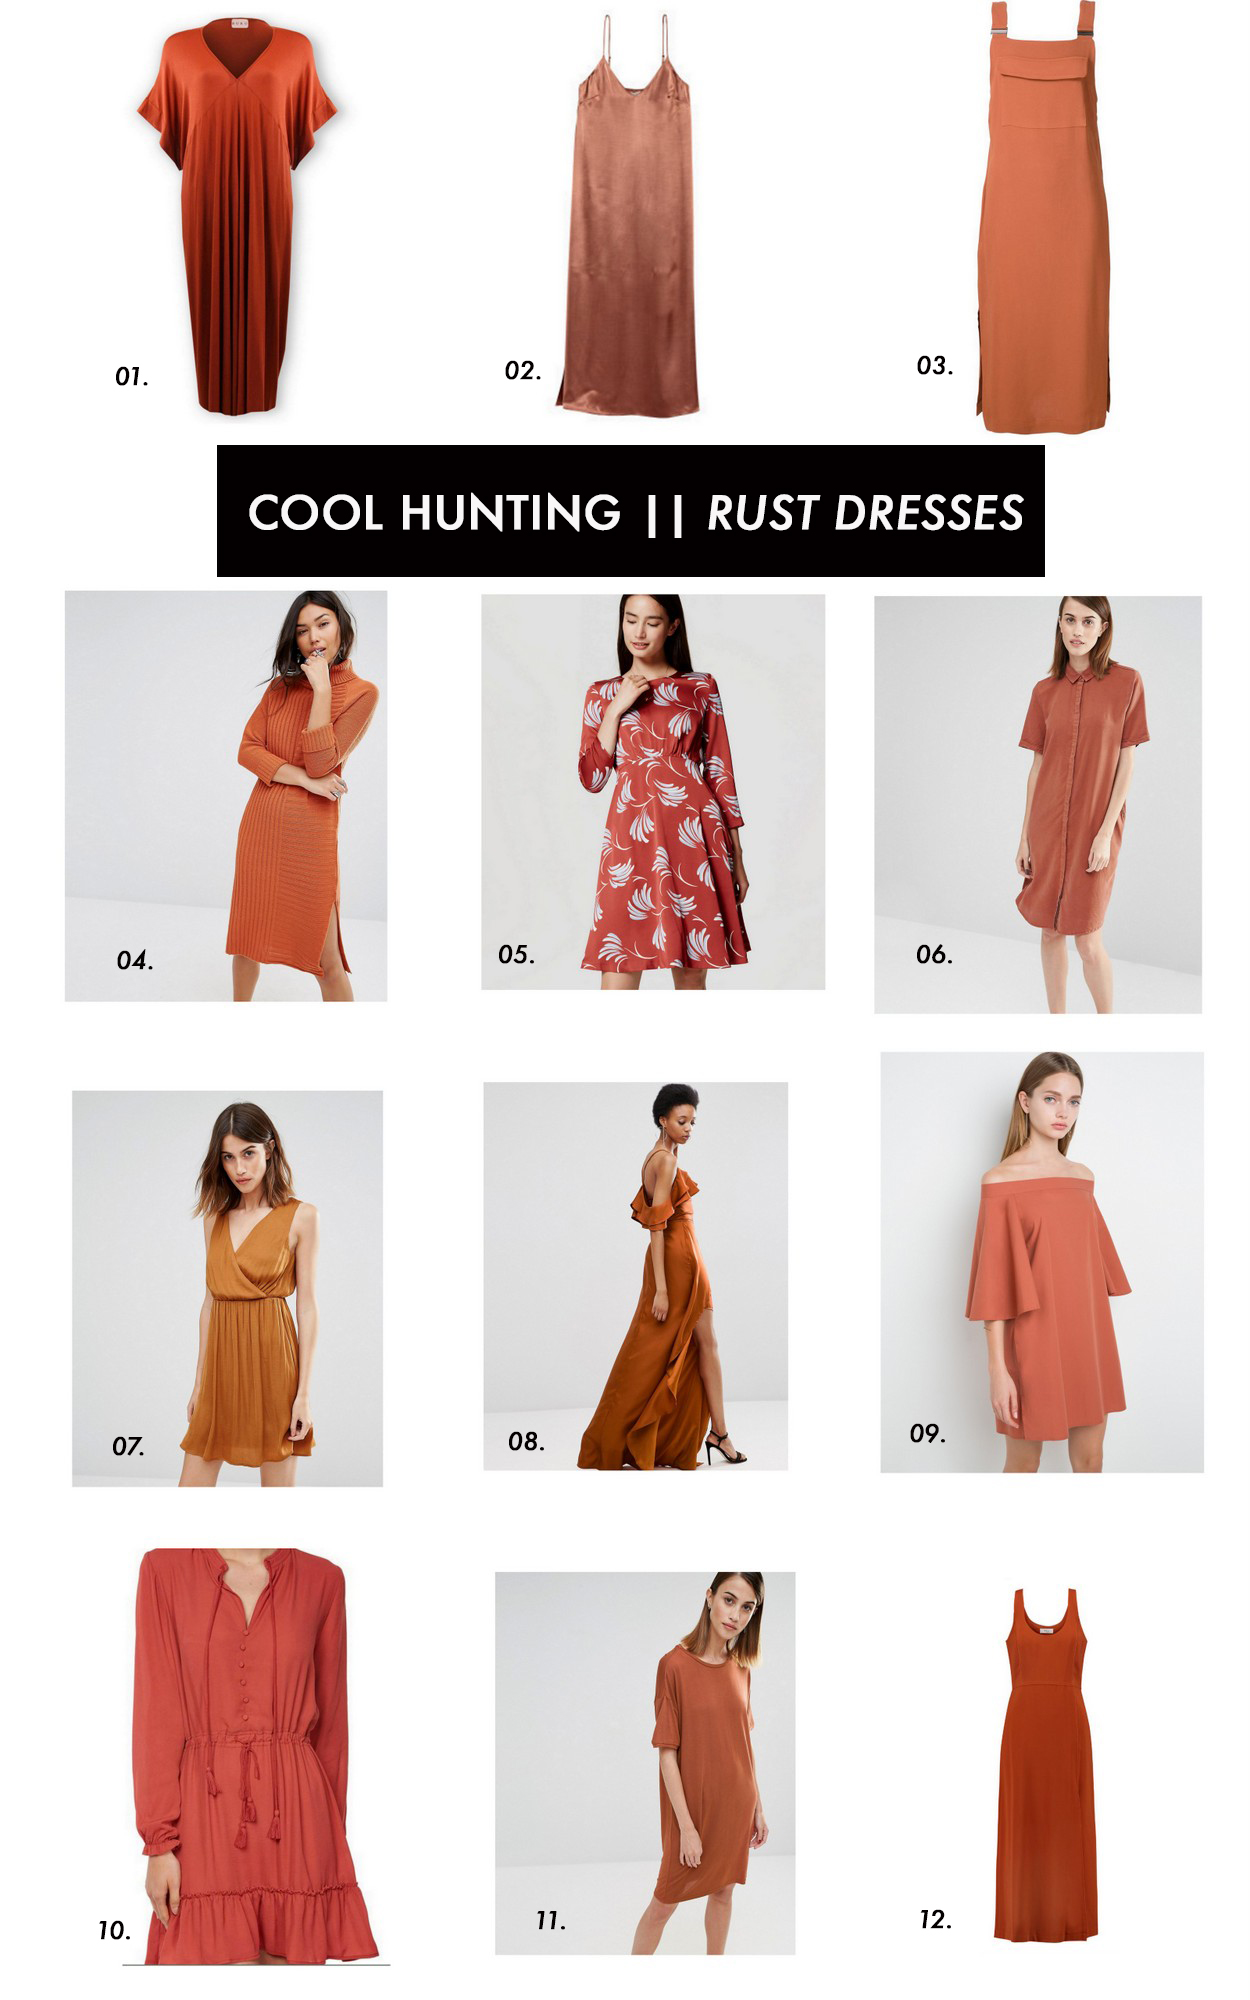 rust dresses copy